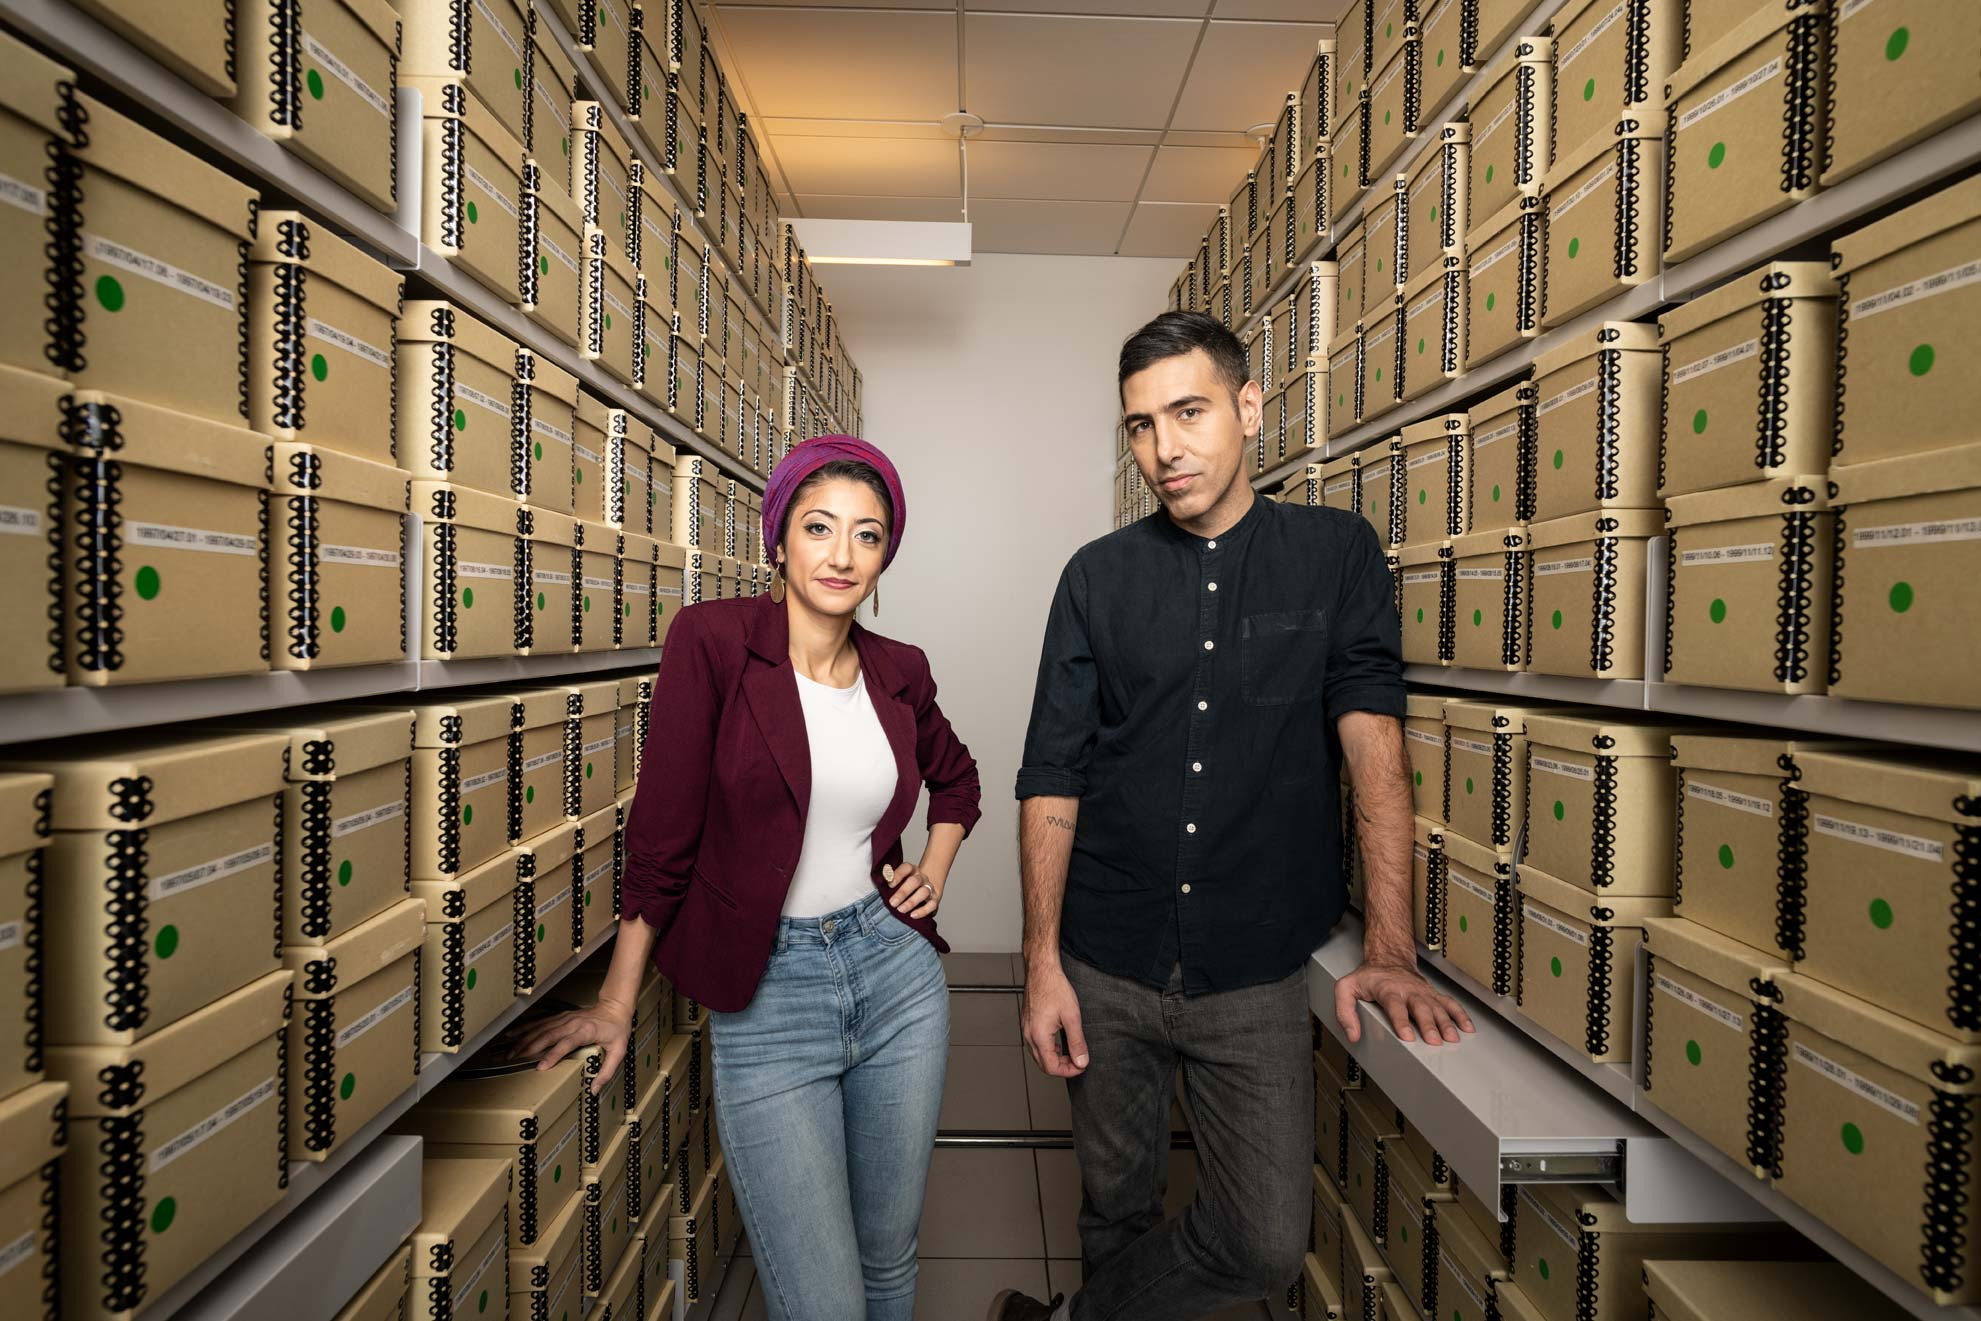 Rund Abdelfatah and Ramtin Arablouei, hosts of NPR